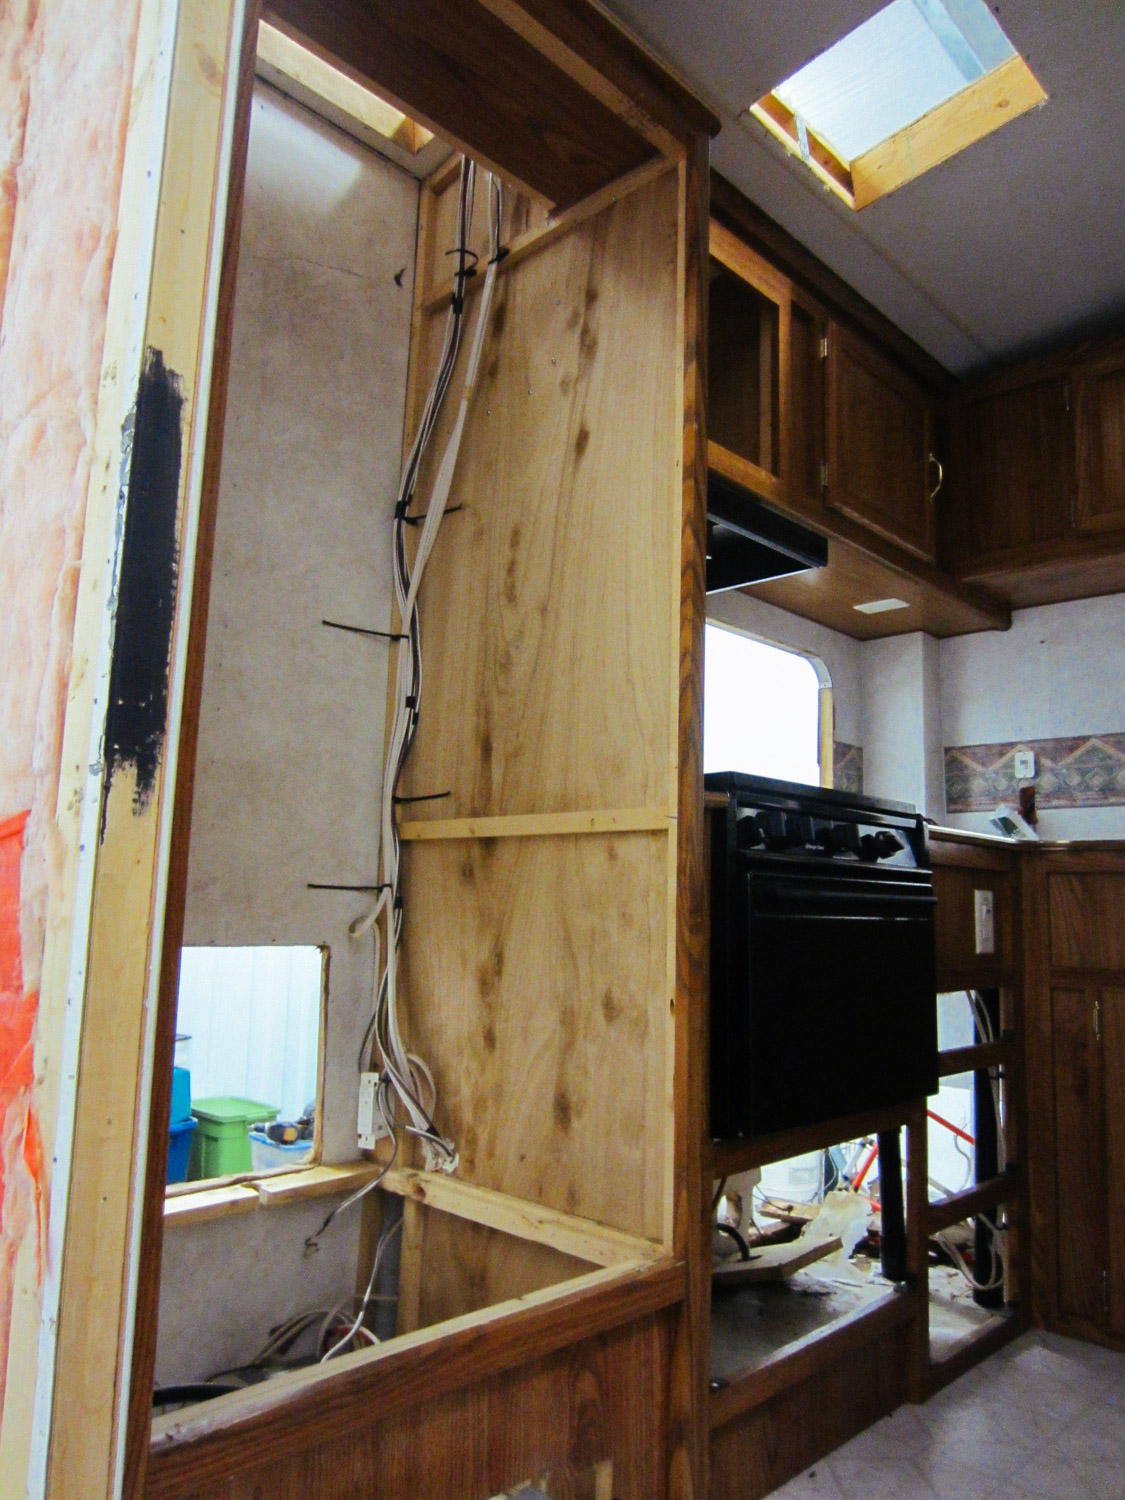 Since we were going to put in a residential fridge, we removed original cabinetry that held the RV fridge.